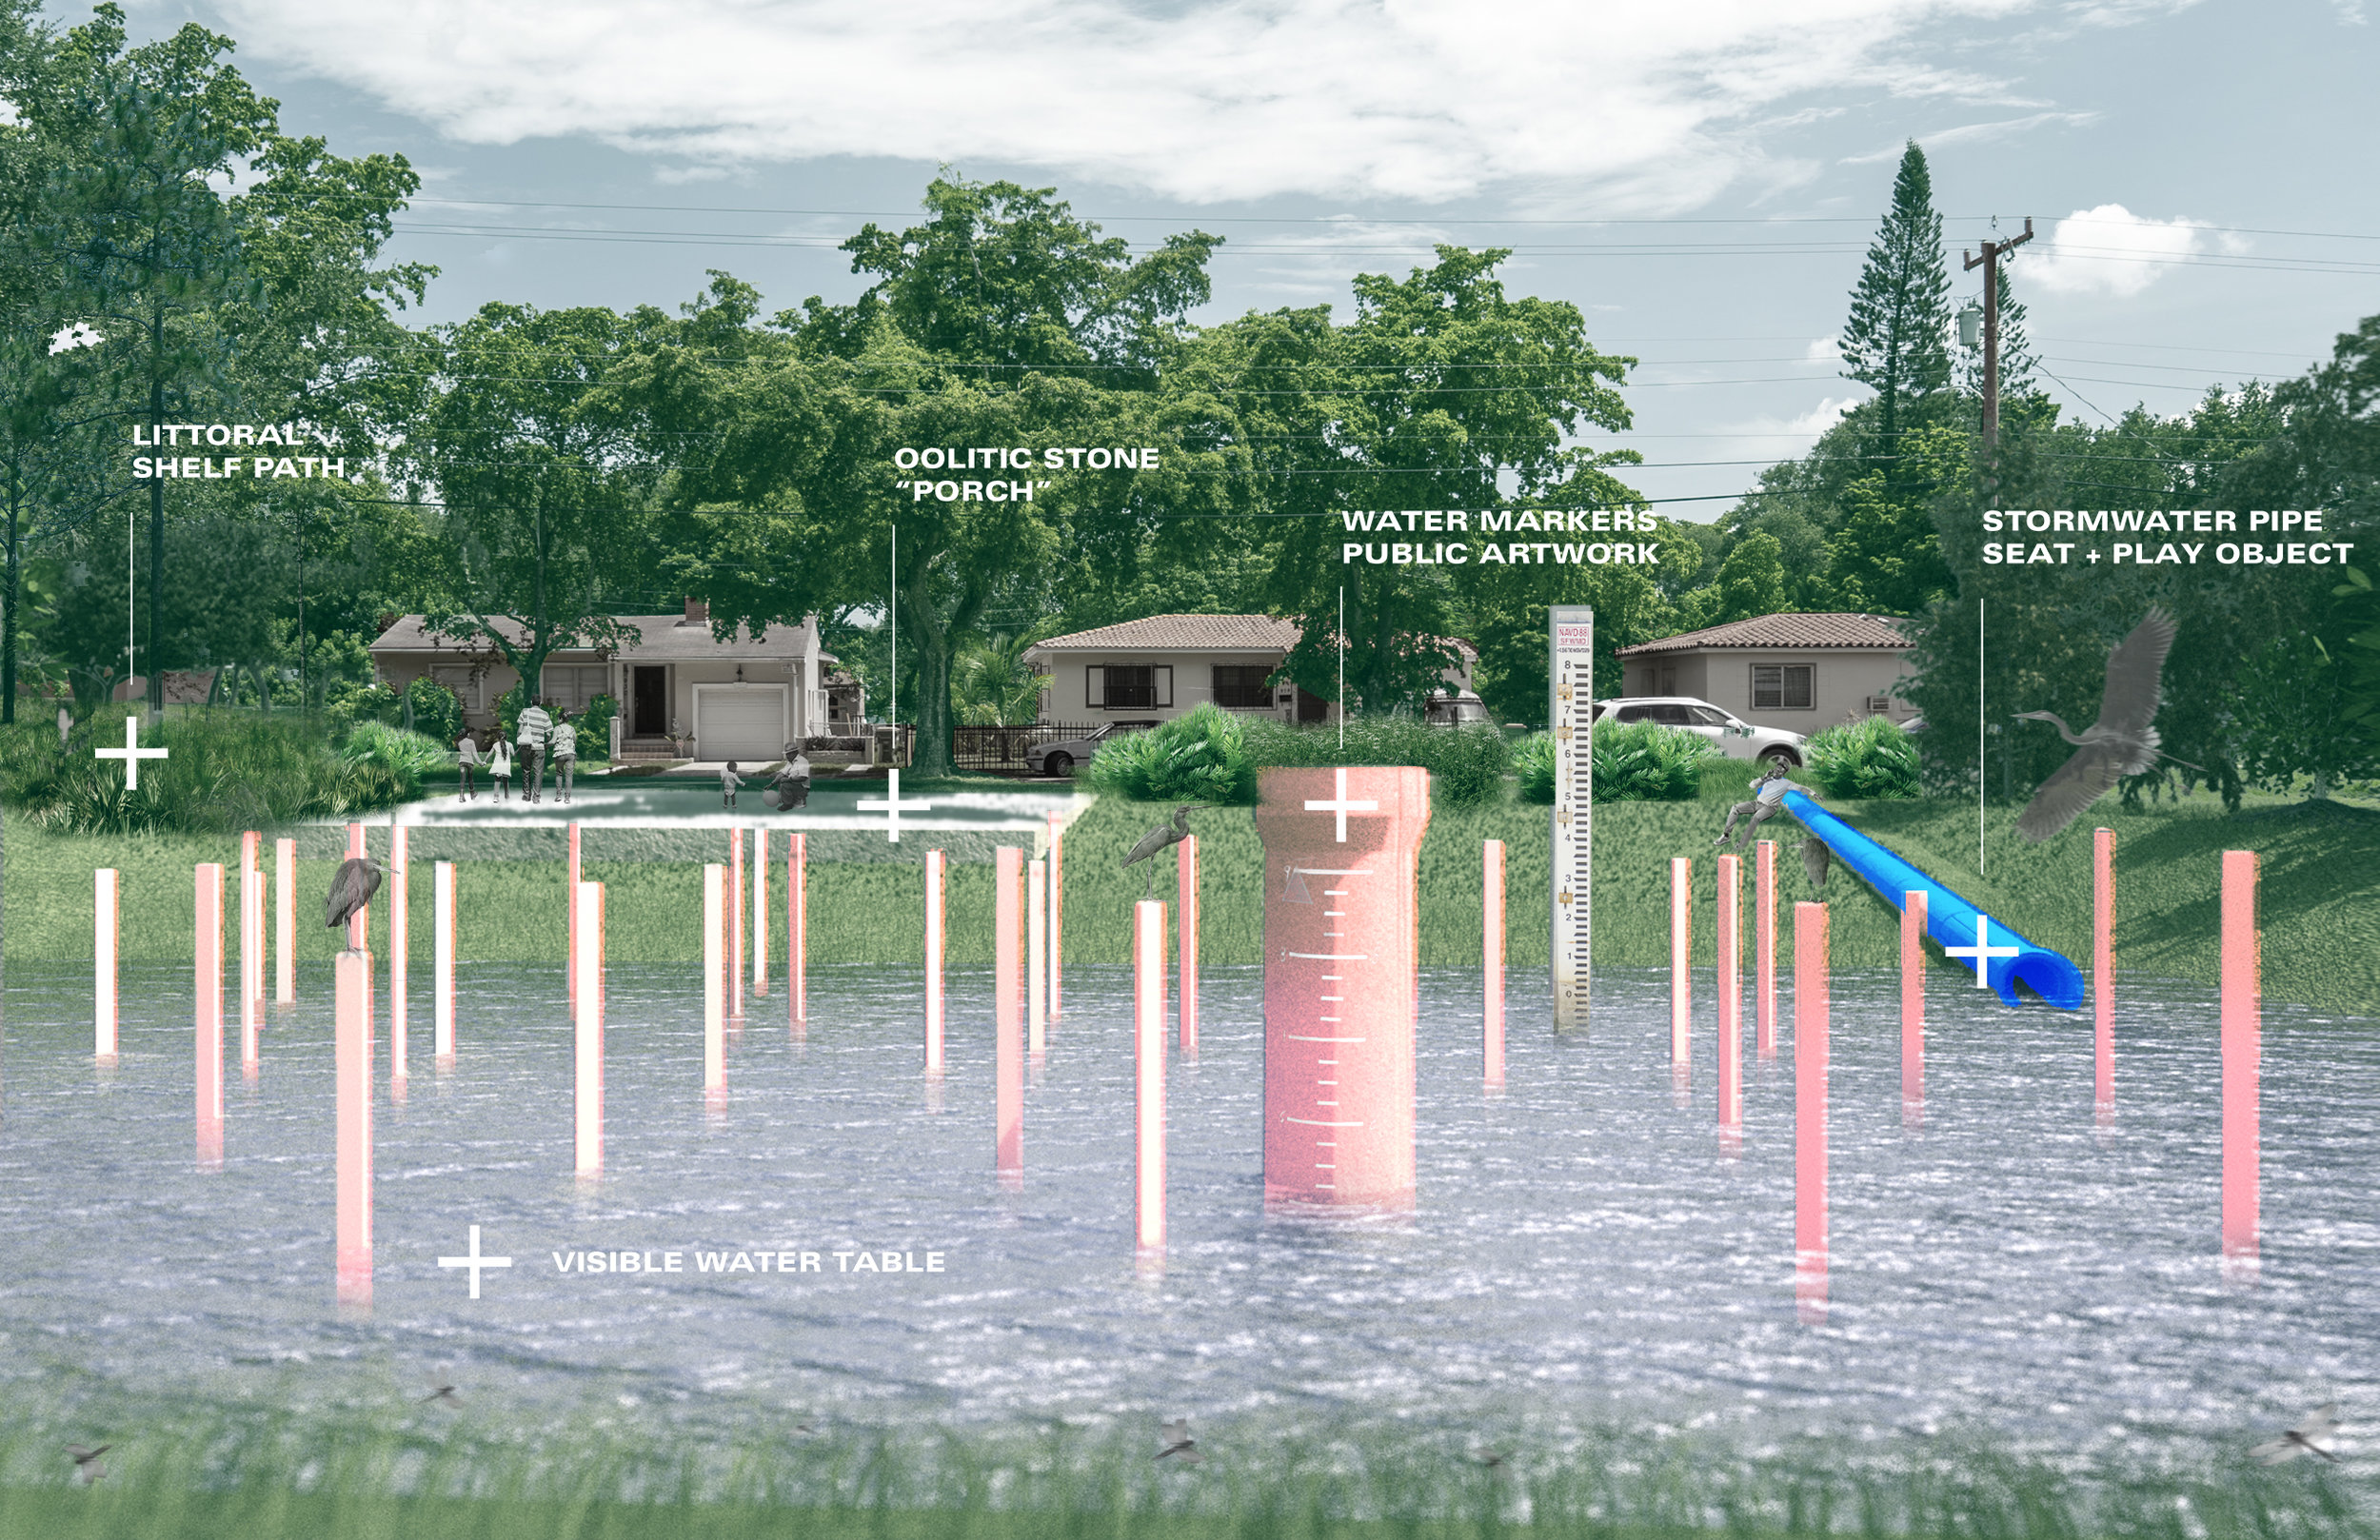 """Good Neighbor"" is a design concept by  Department Design Office . The concept features the creation of a retention pool to collect rainwater and help alleviate flooding on neighboring properties. Visible markers and artwork help inform the community about flooding events. Native plant areas and seating are also featured within the design."